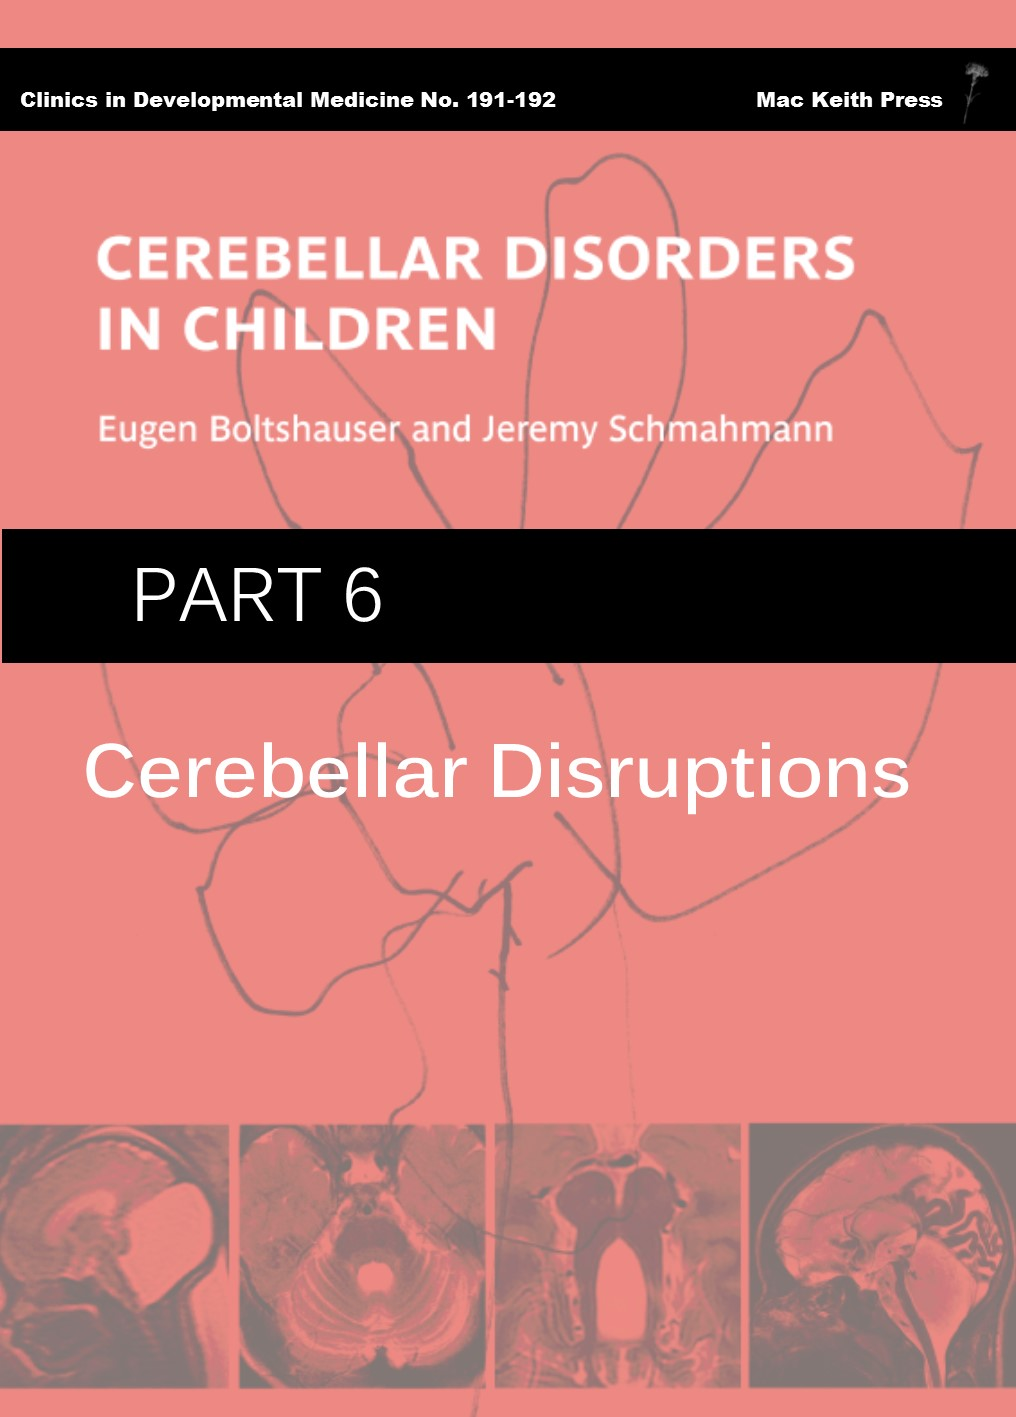 Cerebellar Disorders in Children - Part 6: Cerebellar Disruptions COVER